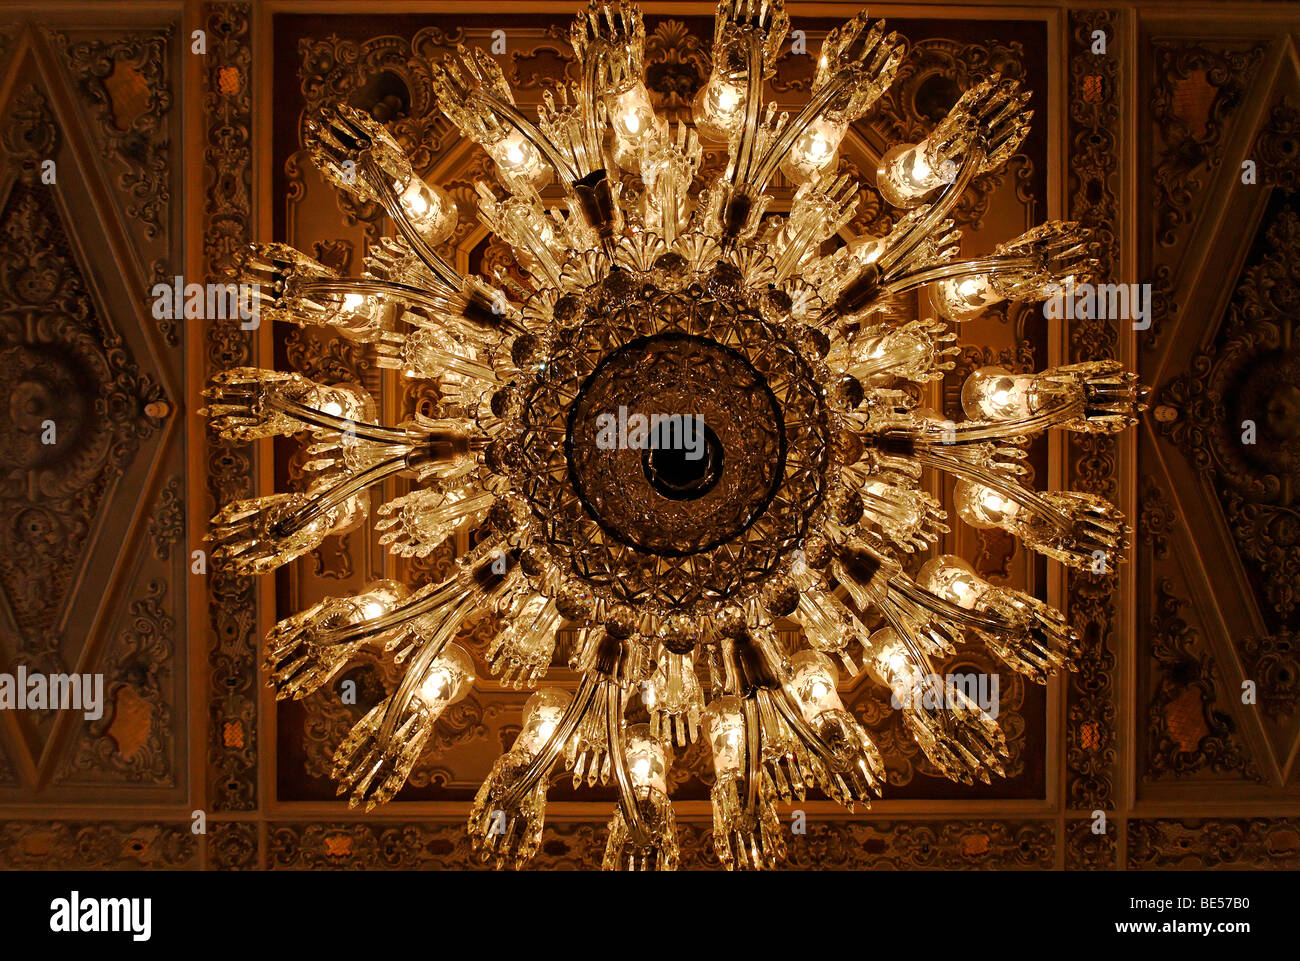 Entrance hall chandelier stock photos entrance hall chandelier ostentatious chandelier with 60 arms entrance hall dolmabahce palace sultans palace from the aloadofball Images